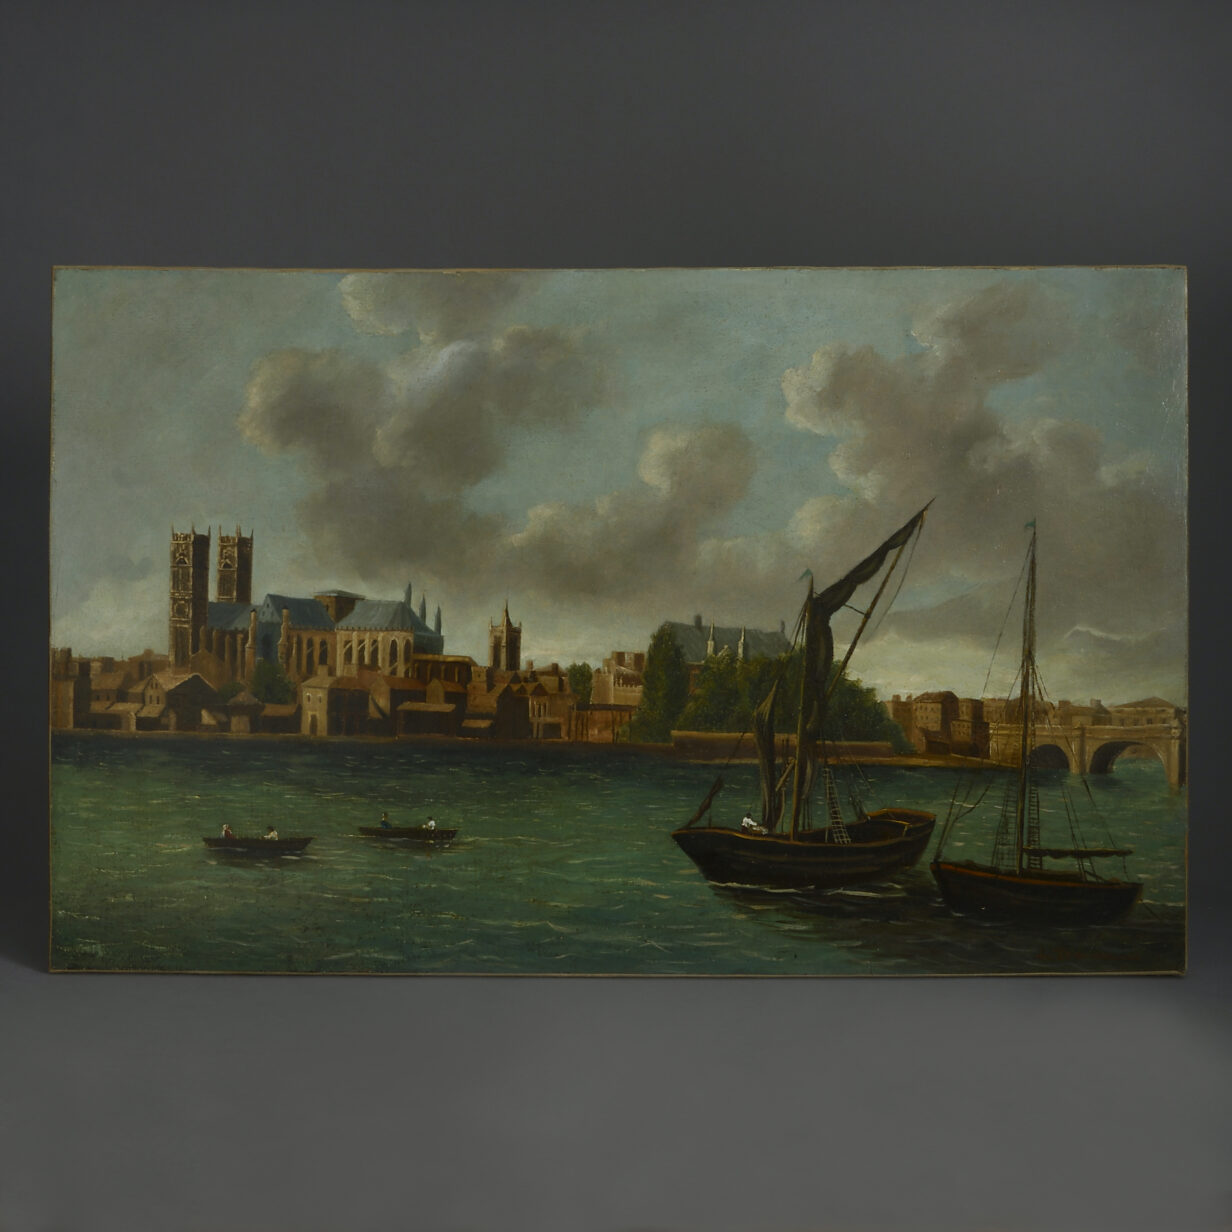 View of London from The Thames